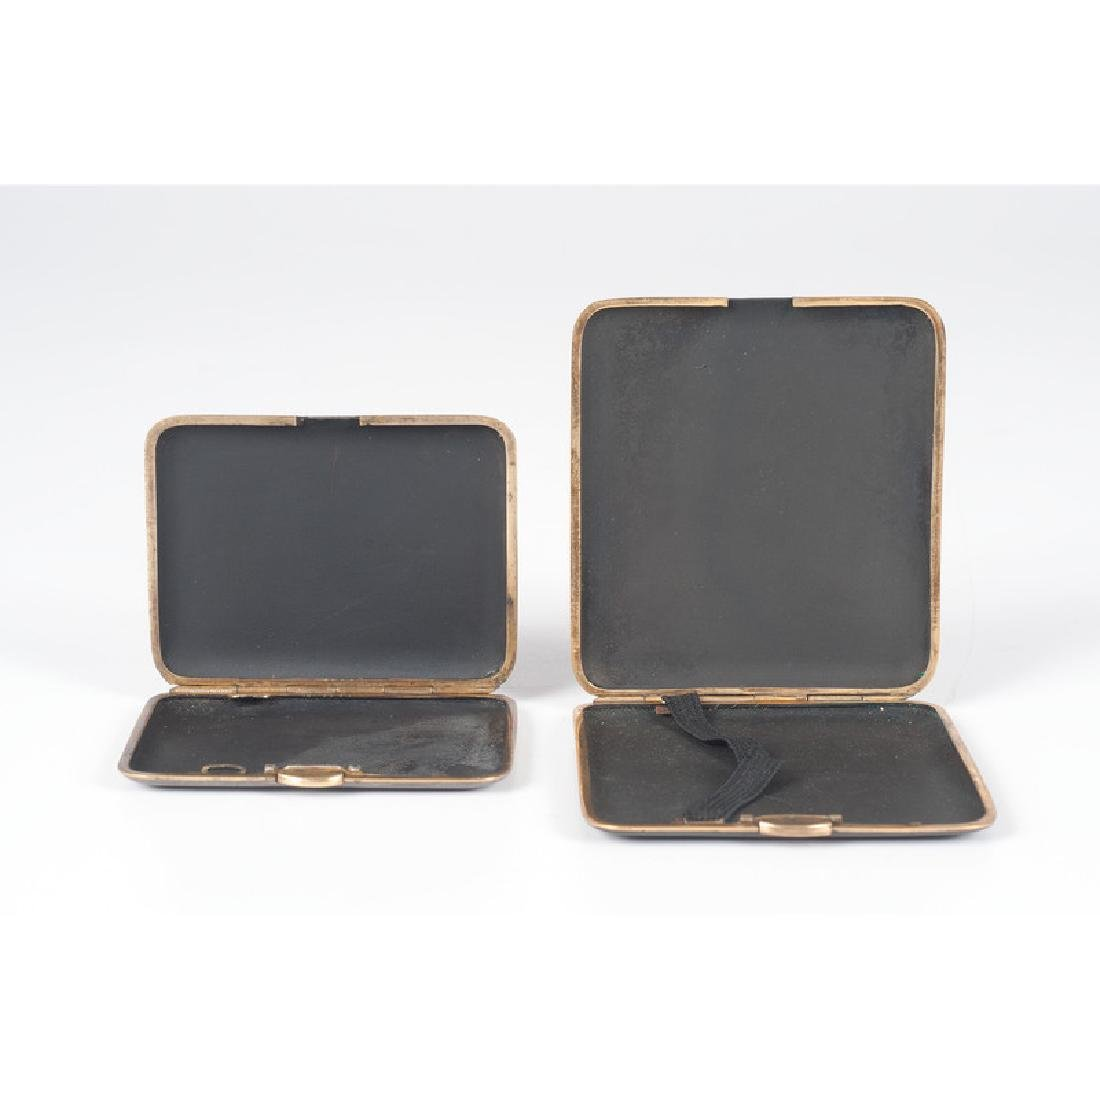 Japanese Komai-style Card and Cigarette Cases - 2